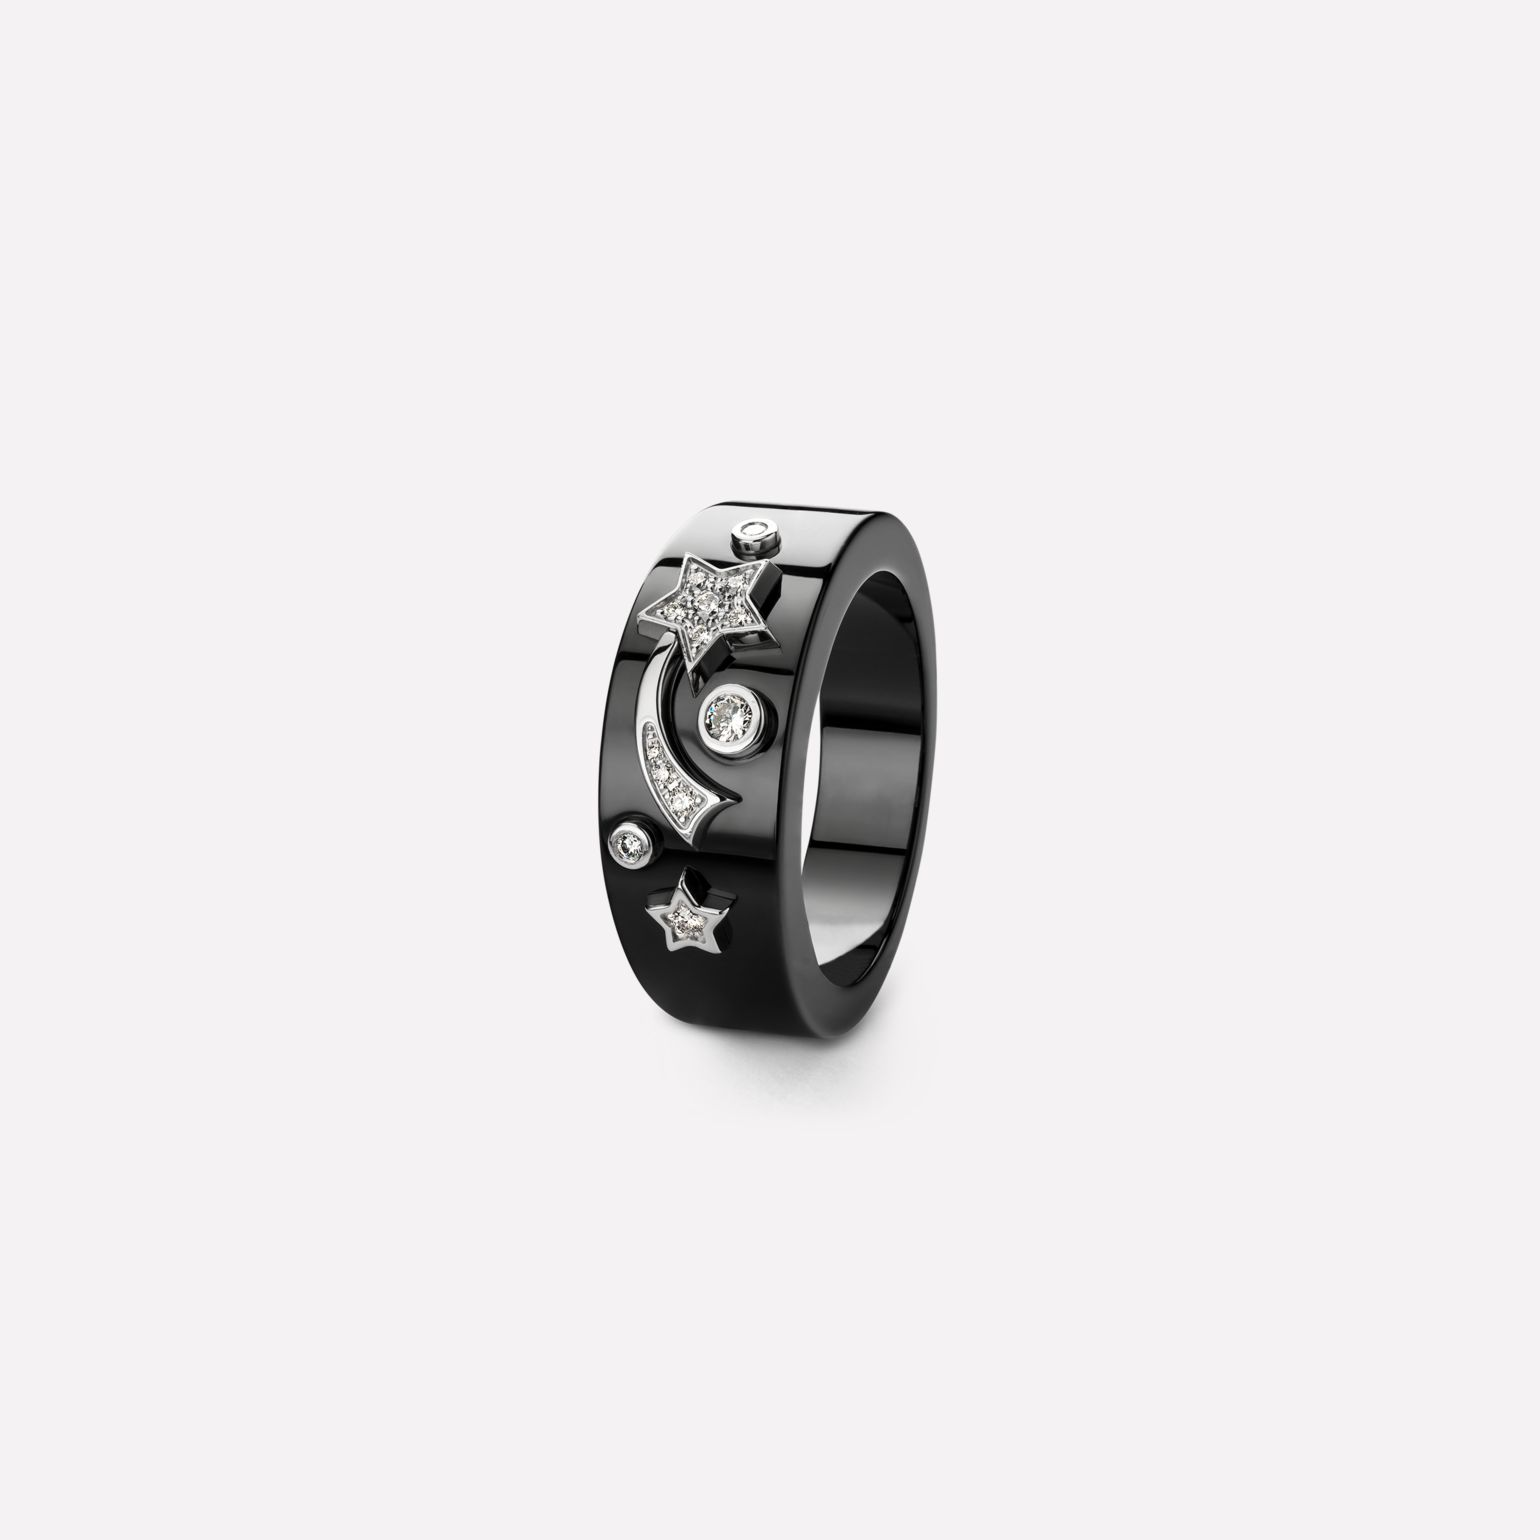 Comète Ring Star ring in black ceramic, 18K white gold and diamonds. Medium version.